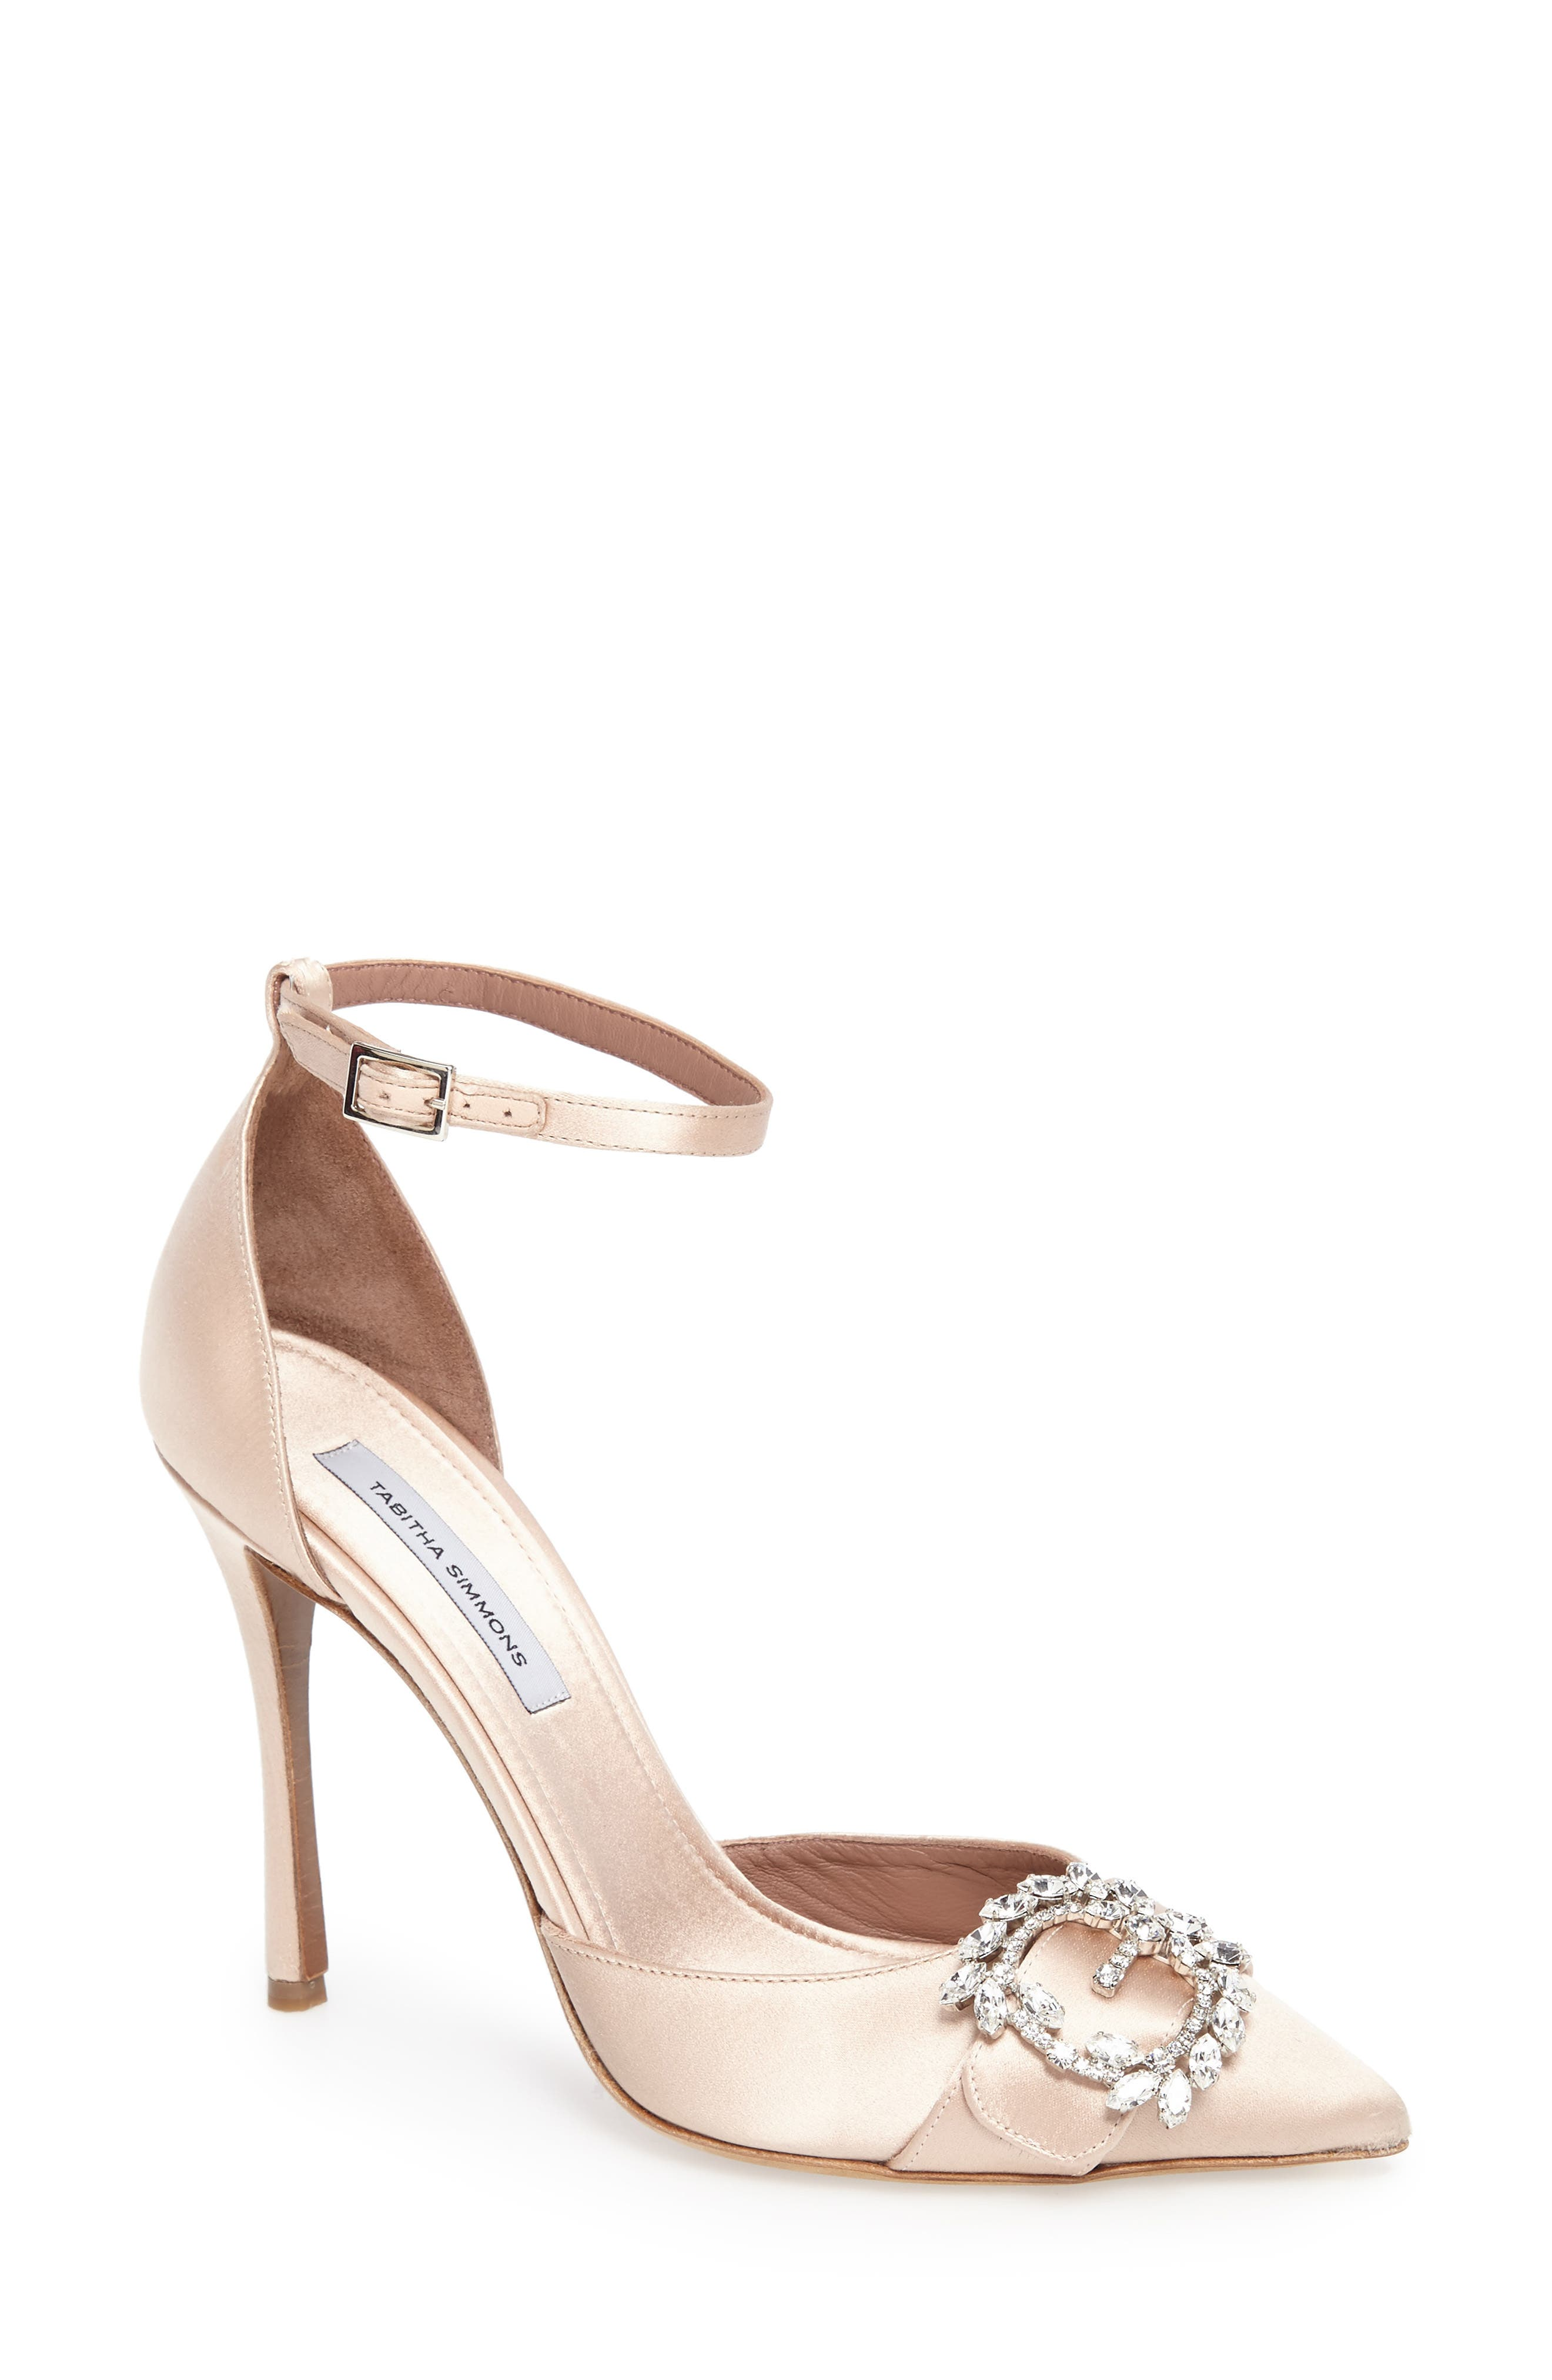 Tie The Knot Crystal Buckle Pump,                             Main thumbnail 1, color,                             250